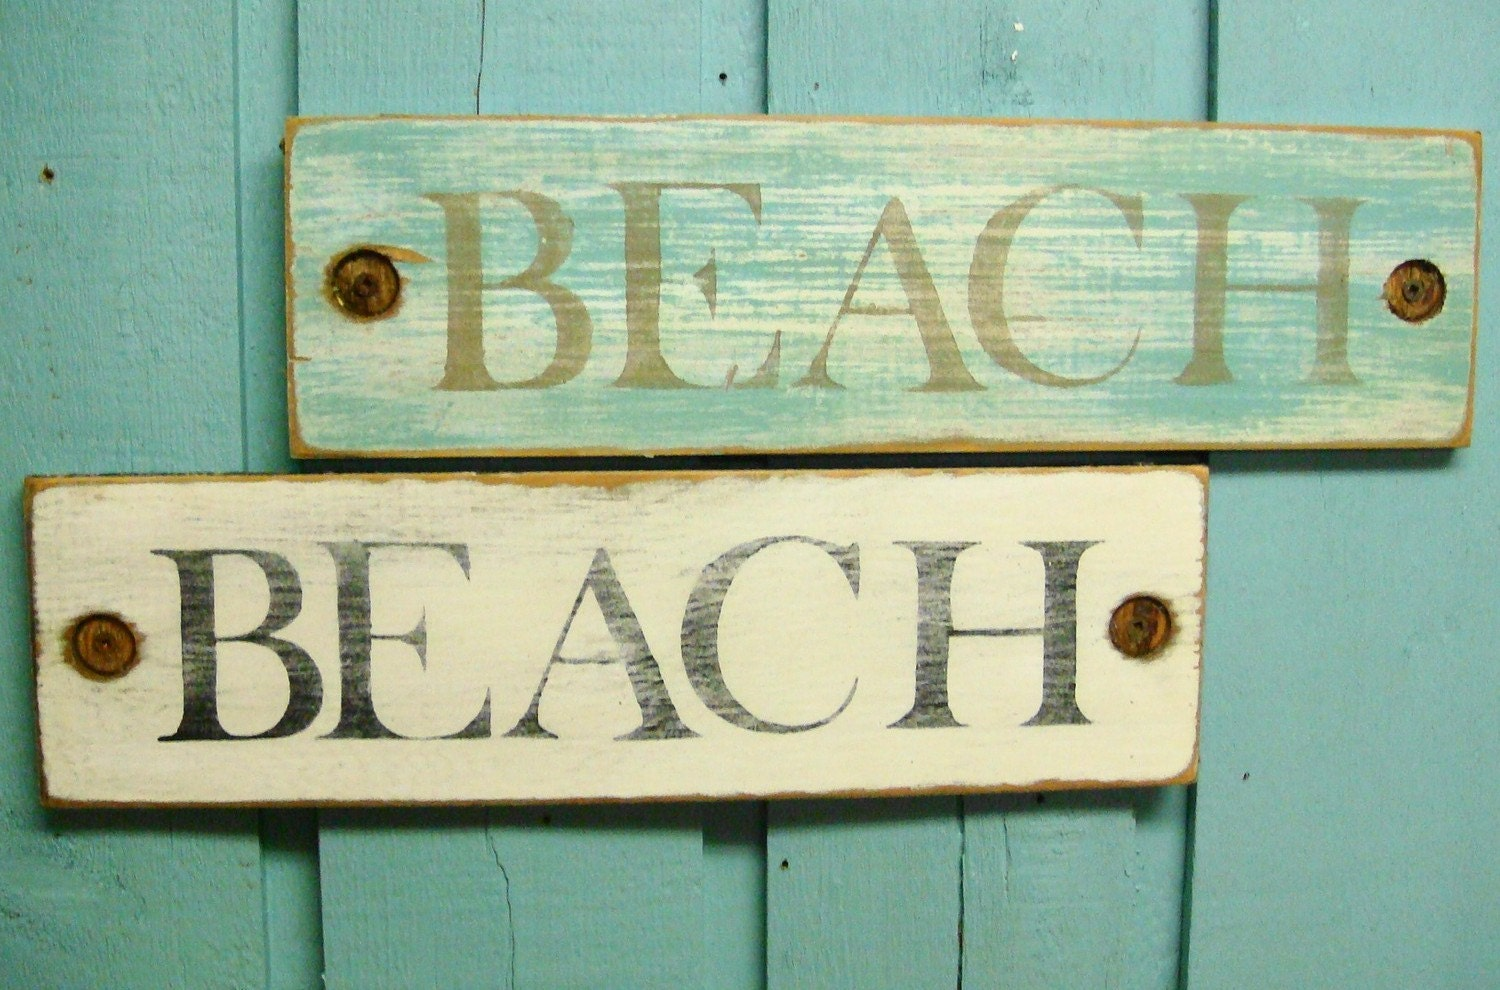 Vintage Wall Decorations together with Chloe Love Gold Arrow 19608 P as well Beach Black And White Weathered Wood also Pools Tropical Pool Orange County besides Vinyl. on beach house decor signs